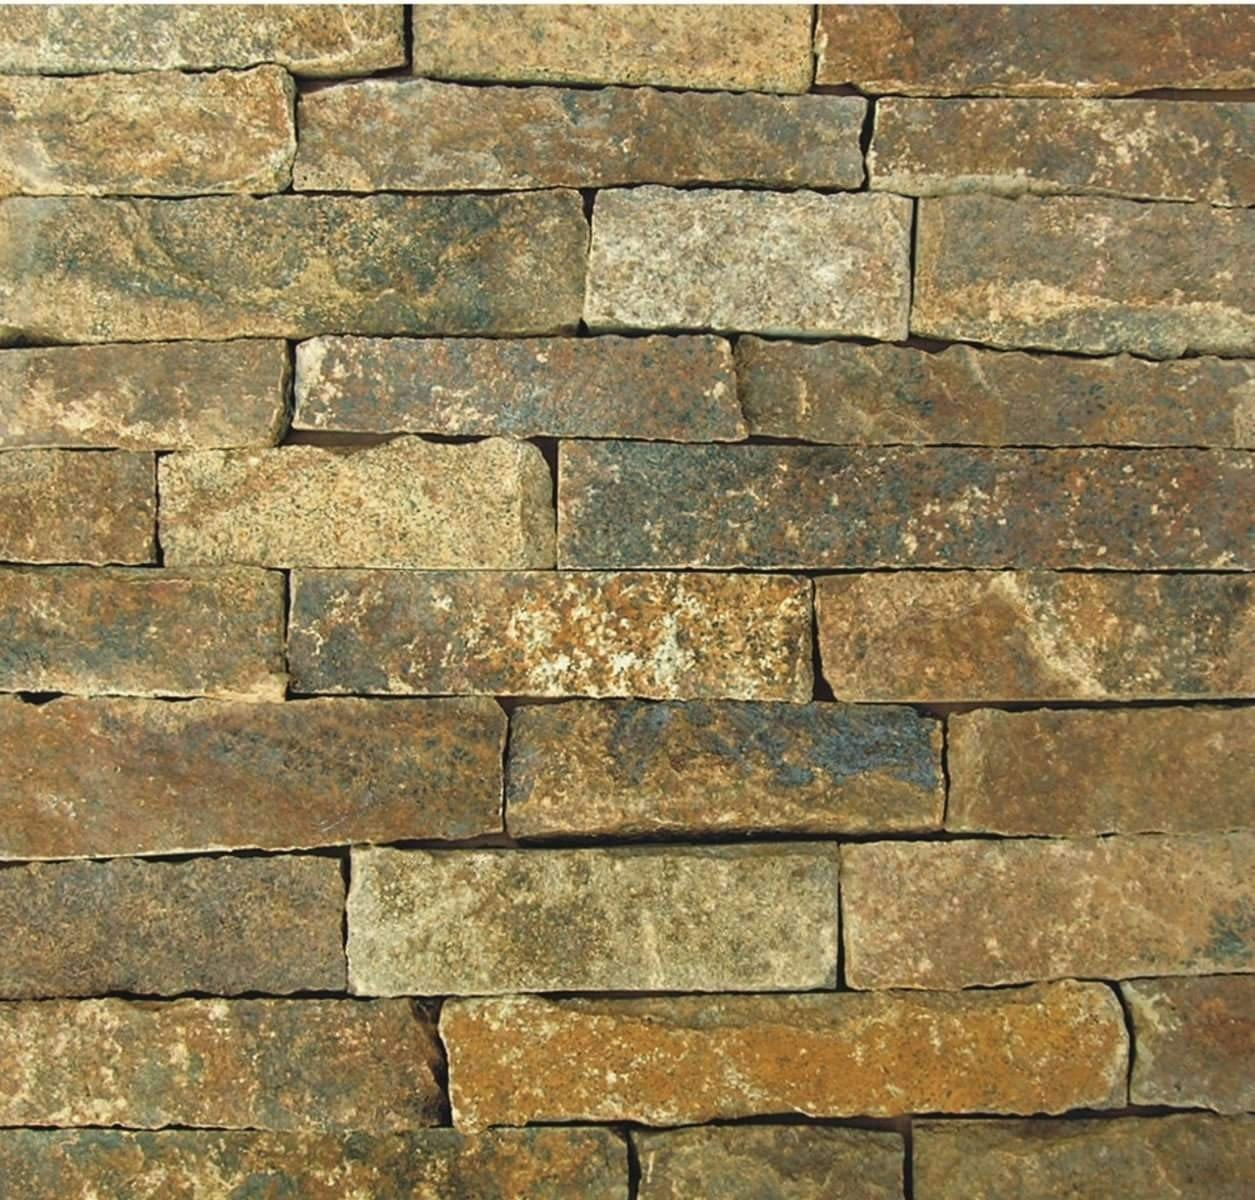 Falco - European Stackstone cheap stone veneer clearance - Discount Stones wholesale stone veneer, cheap brick veneer, cultured stone for sale